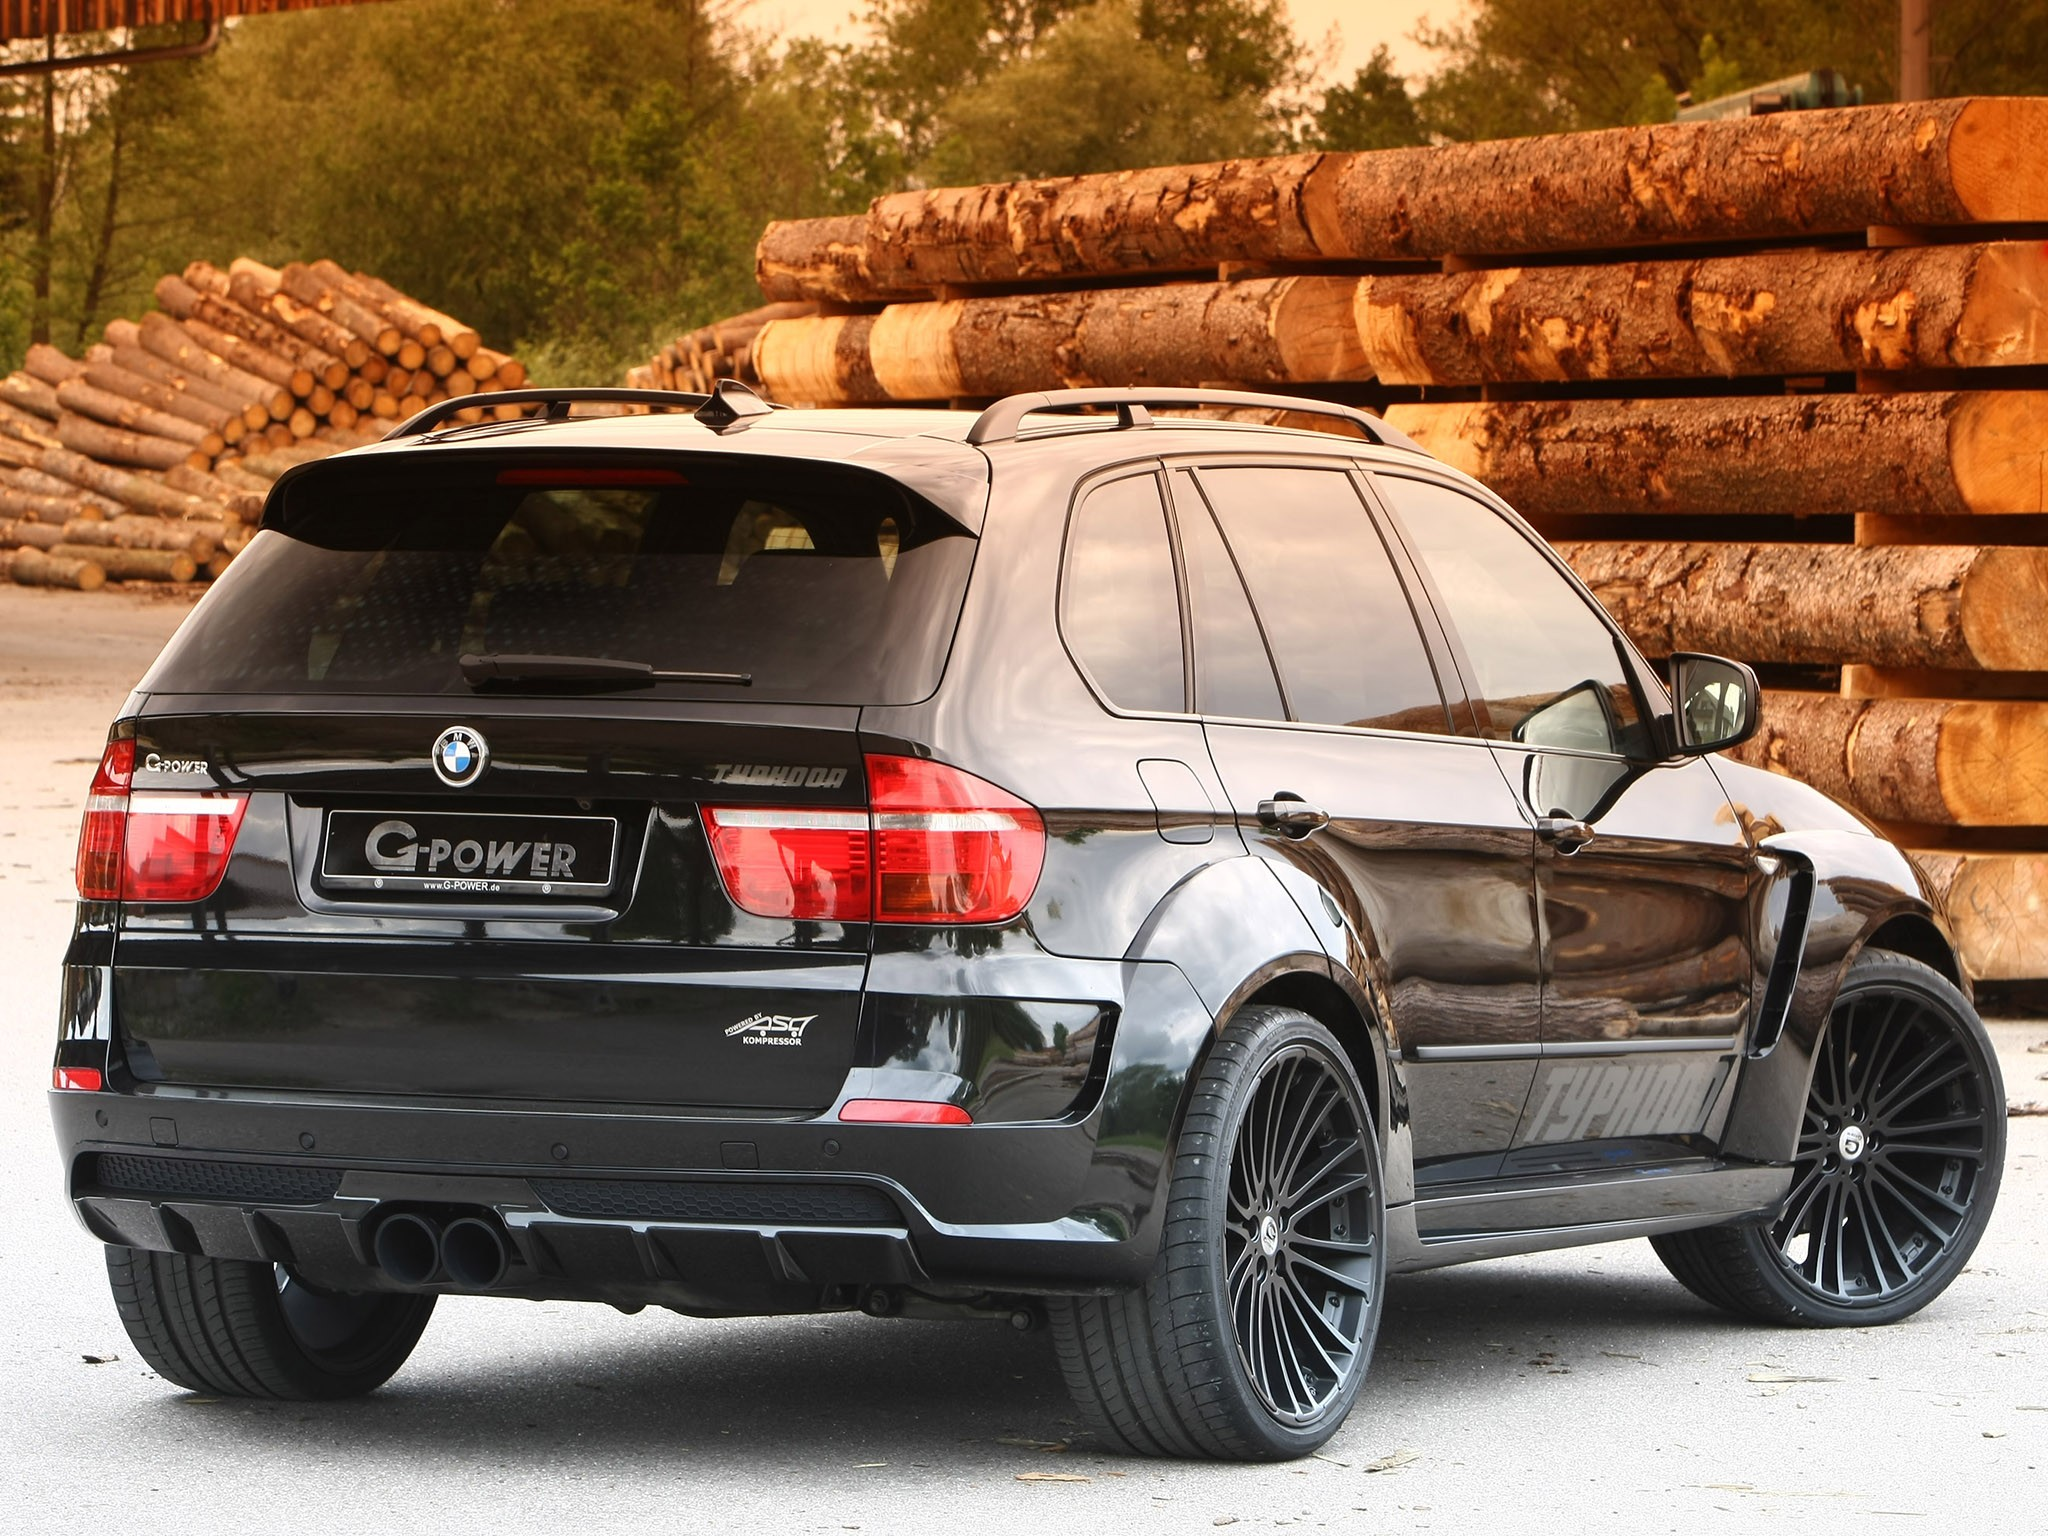 2010 G-power - Bmw X5 Typhoon Black Pearl